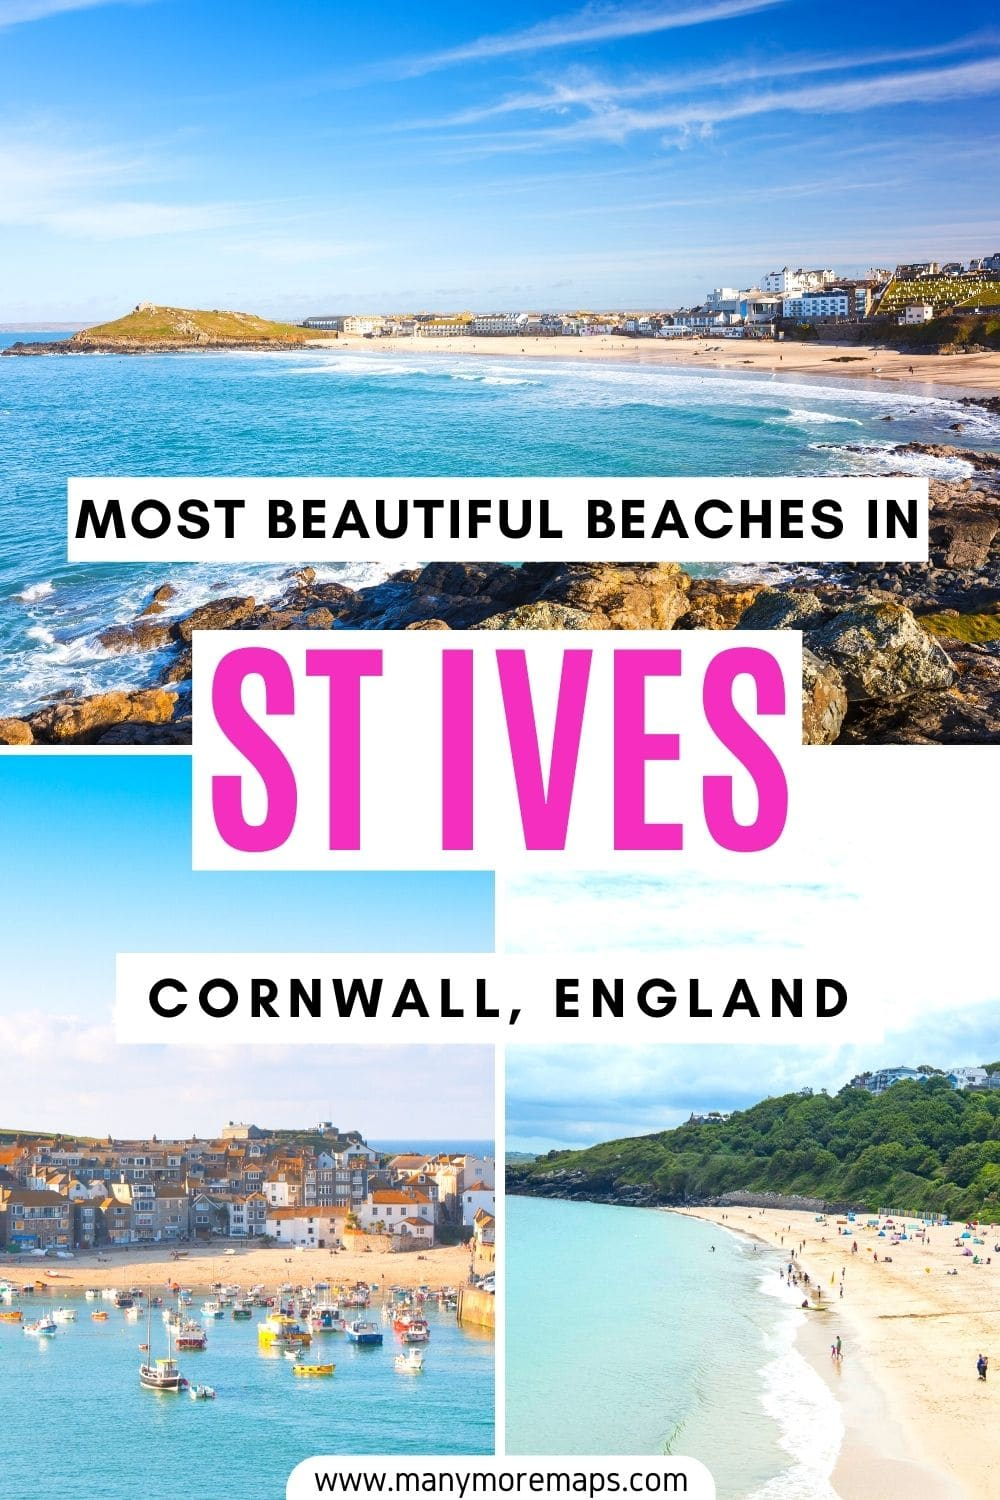 Looking for the best beaches to visit in St Ives whilst travelling in Cornwall? Check out these beautiful beaches in Cornwall you can't miss. Best things to do in St Ives, places to visit in Cornwall, things to see in Cornwall, Cornwall itinerary, Cornwall road trip, Cornwall surf destinations, Cornwall holidays, Cornwall best things to do, St Ives holidays, summer in England, UK staycation ideas, England travel, UK bucketlist, UK beaches, UK surfing, England surfing, England beaches.